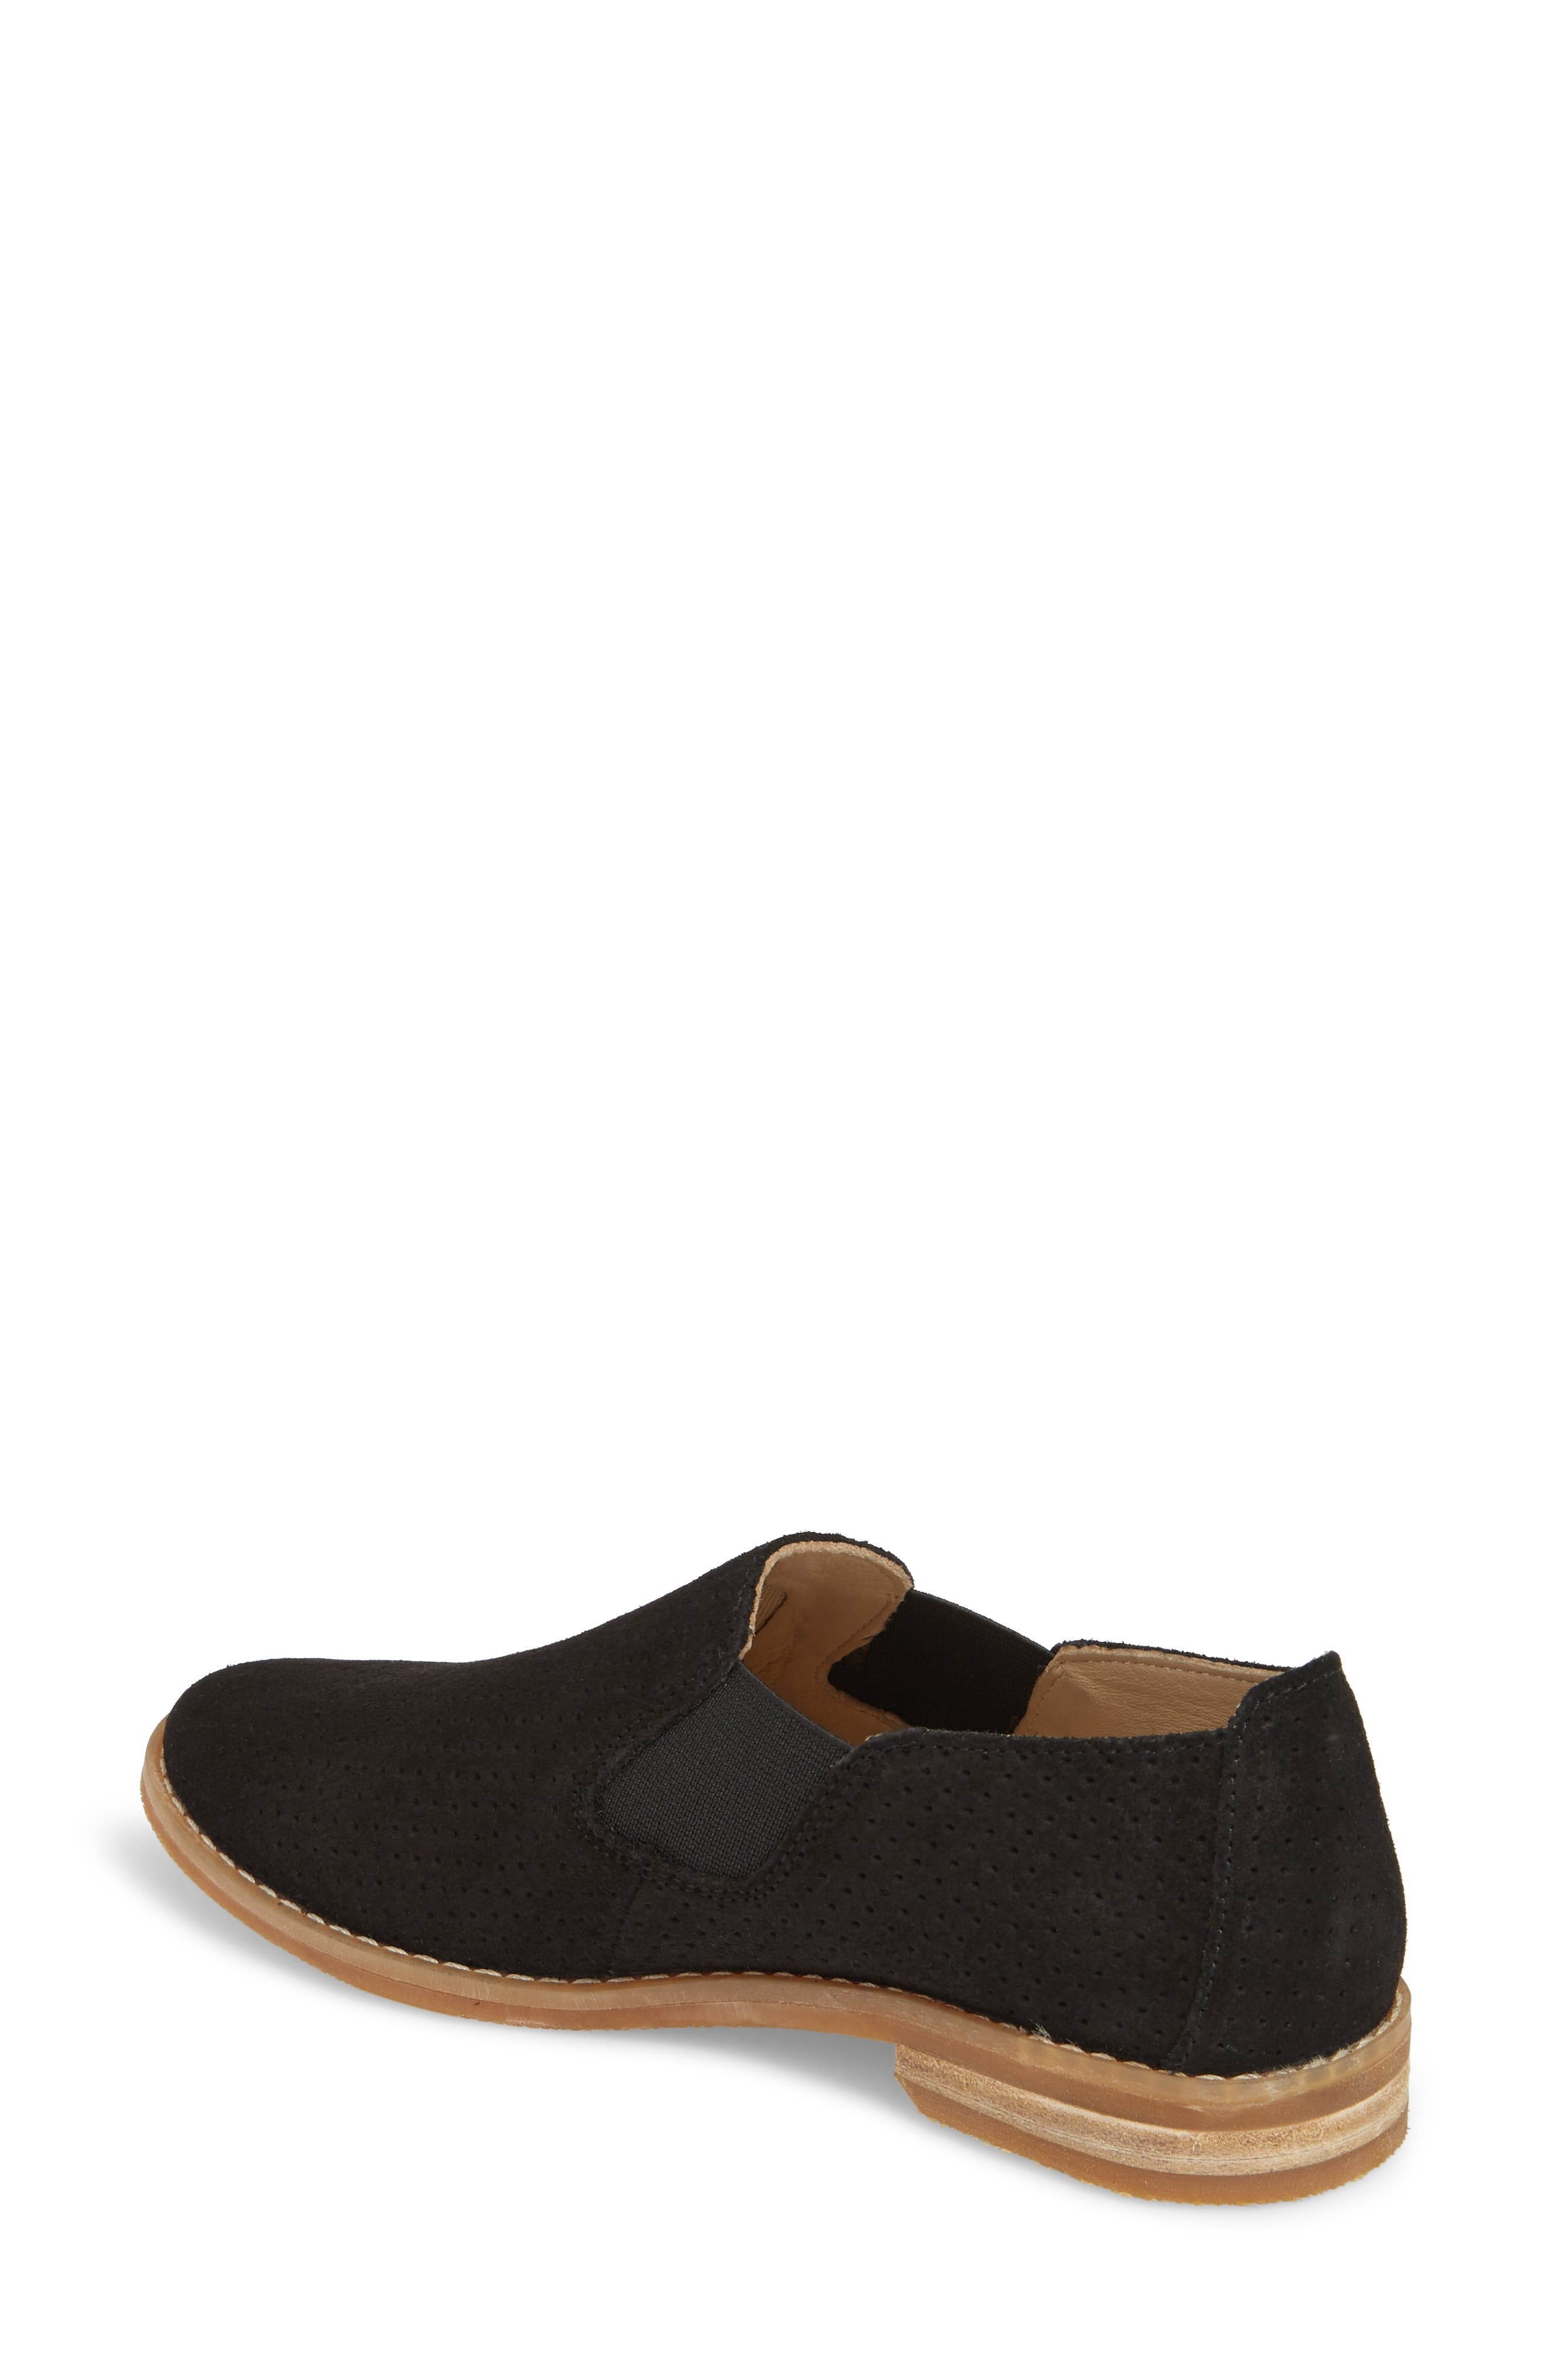 Hush Puppies Analise Clever Slip-On,                             Alternate thumbnail 2, color,                             Black Perforated Suede